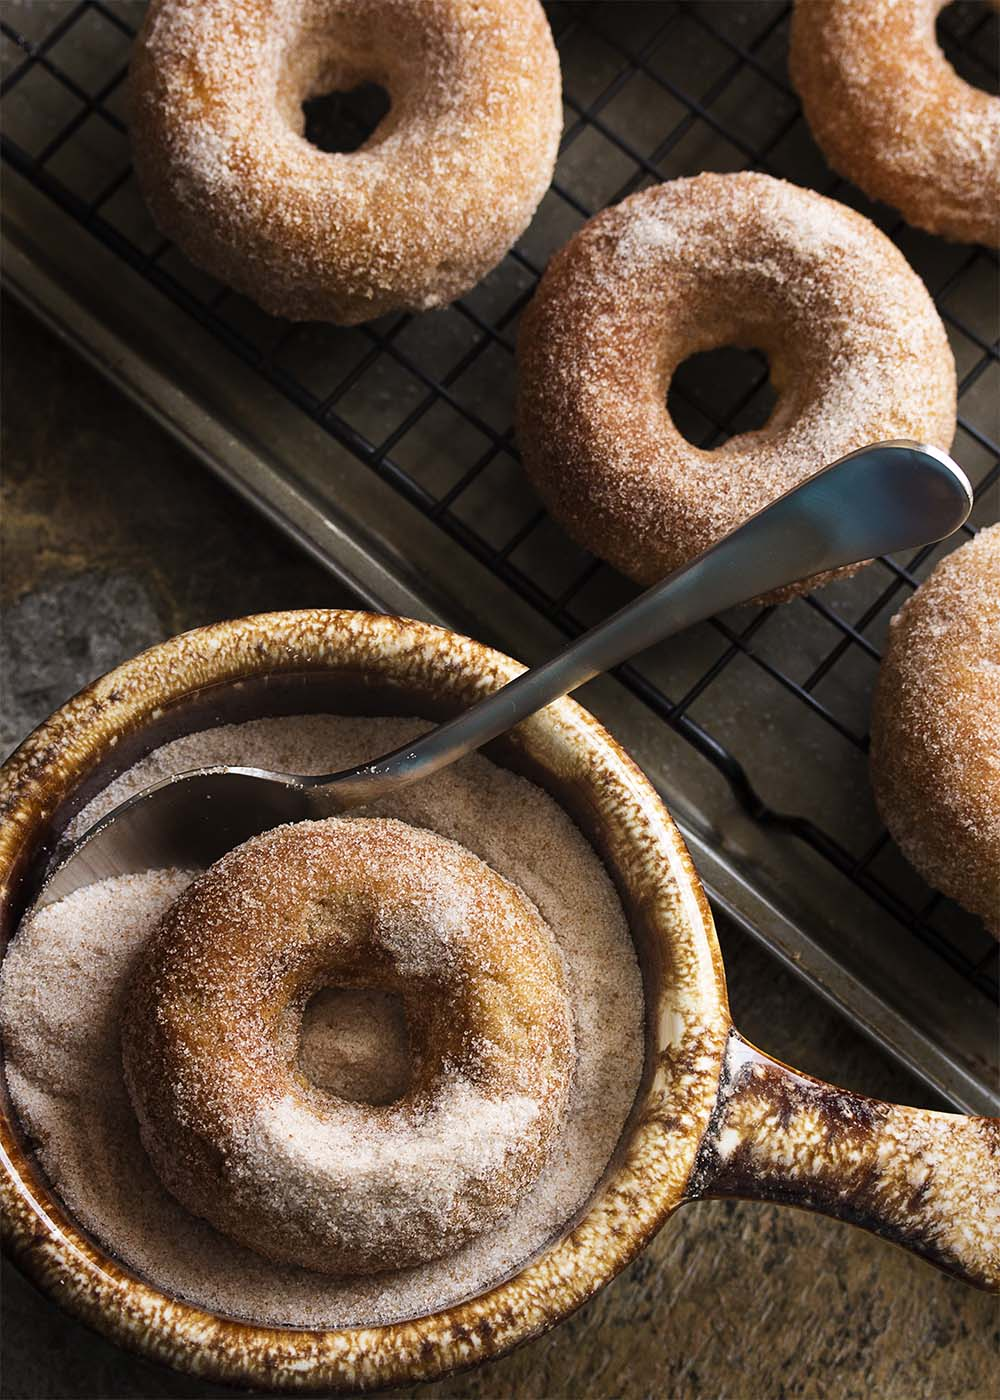 Churros just got a little bit healthier! No deep frying needed. Baked churro donuts are make in a donut pan and rolled in cinnamon sugar. This means you can totally justify the spicy chocolate sauce to dip them in.   justalittlebitofbacon.com